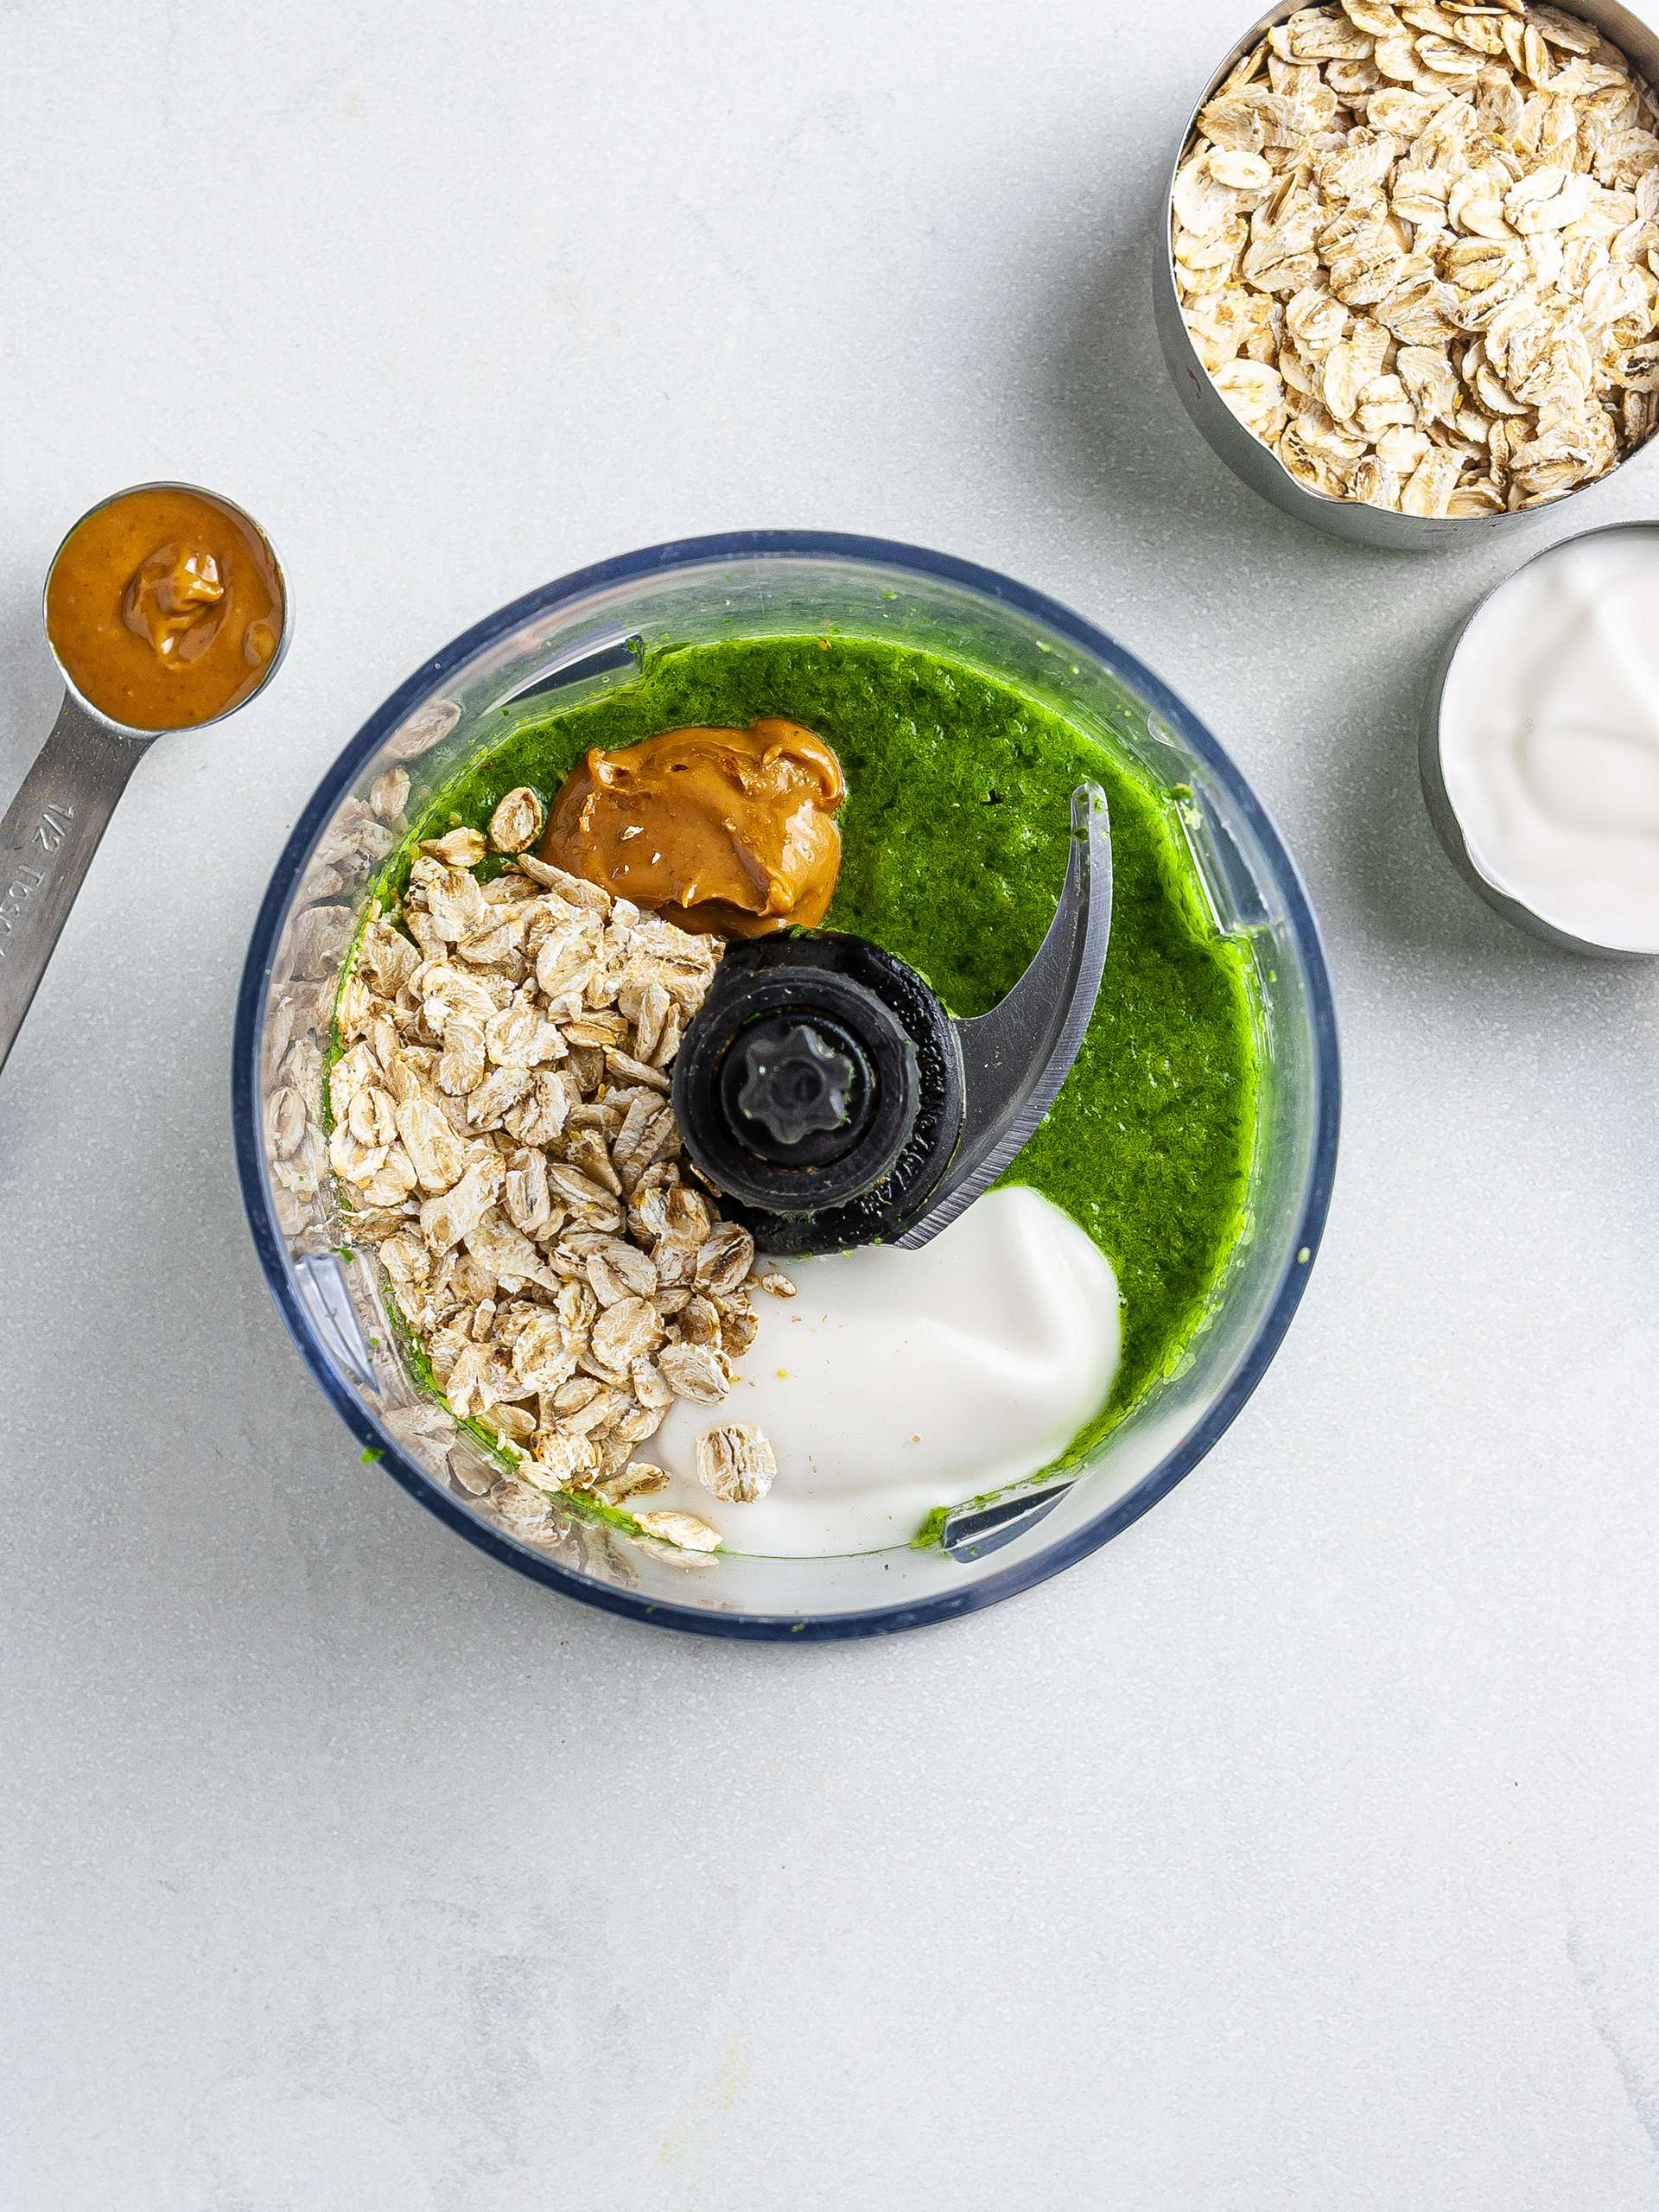 Oats, yogurt, almond butter added to green smoothie